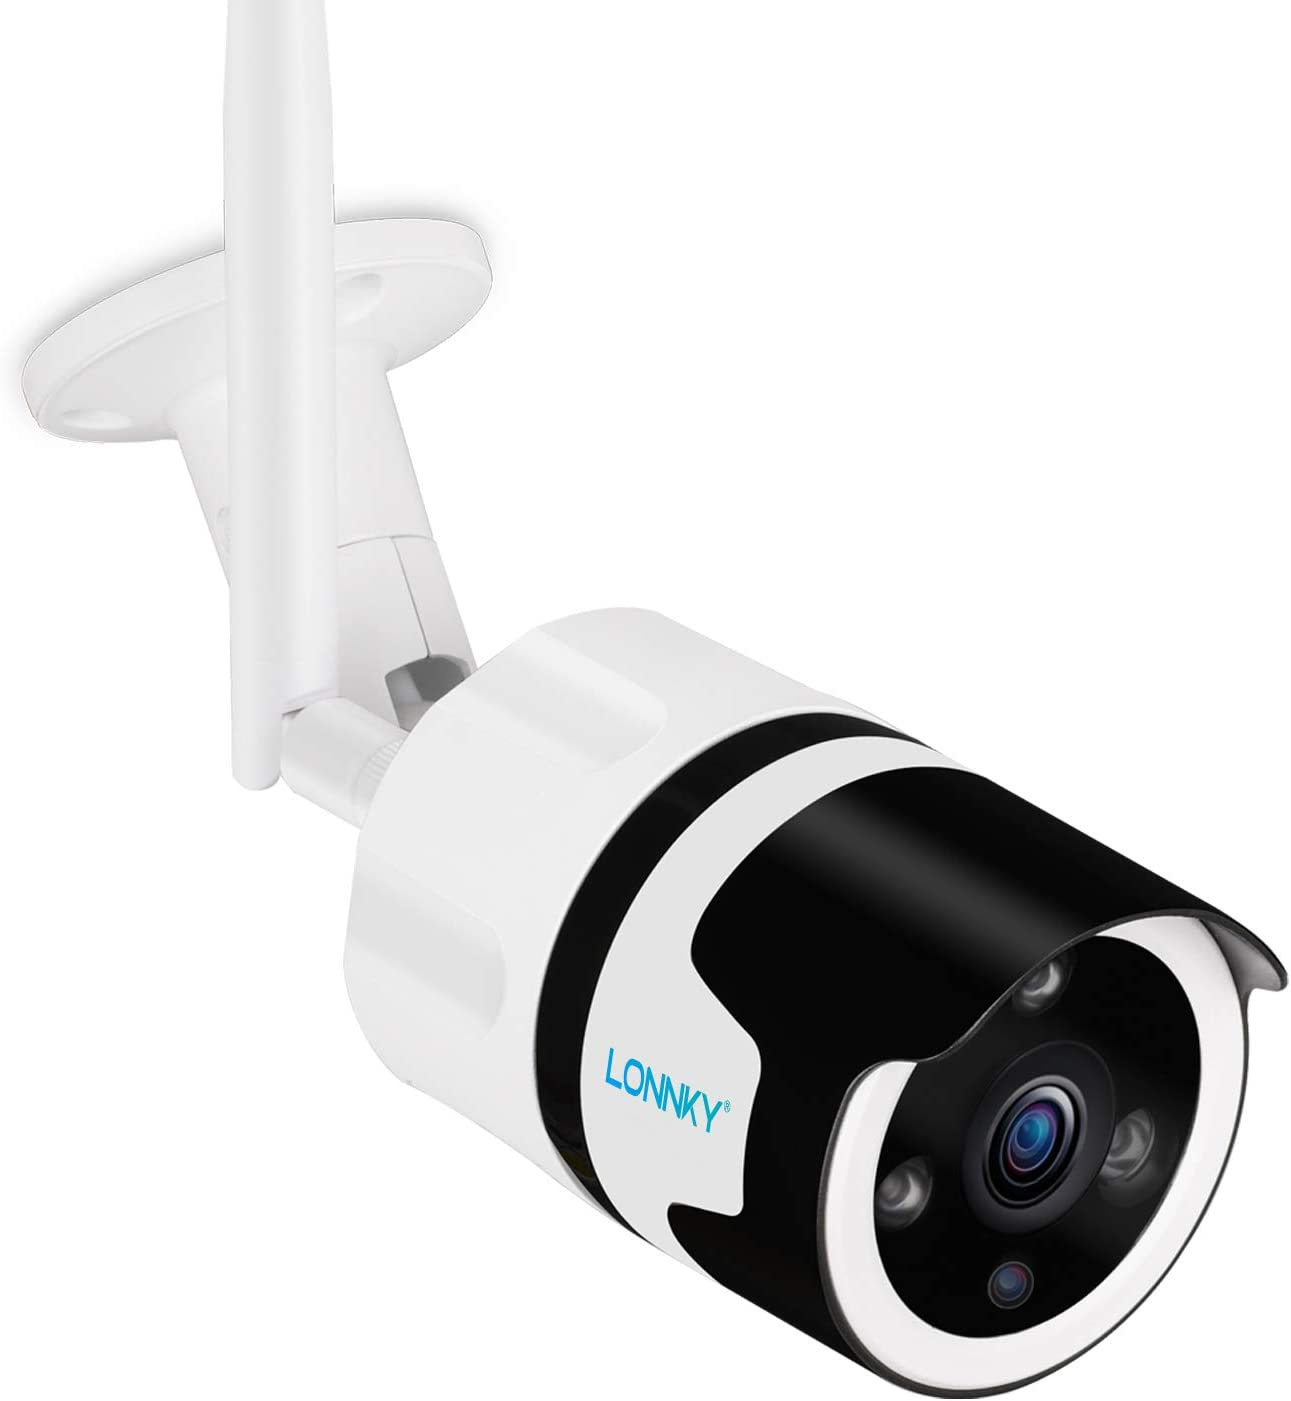 Outdoor Security Camera,LONNKY 1080P Full HD WiFi Outdoor IP Security Bullet Camera, Two-Way Audio and Wide Viewing Angle,Weatherproof and Motion Detection with Night Vision